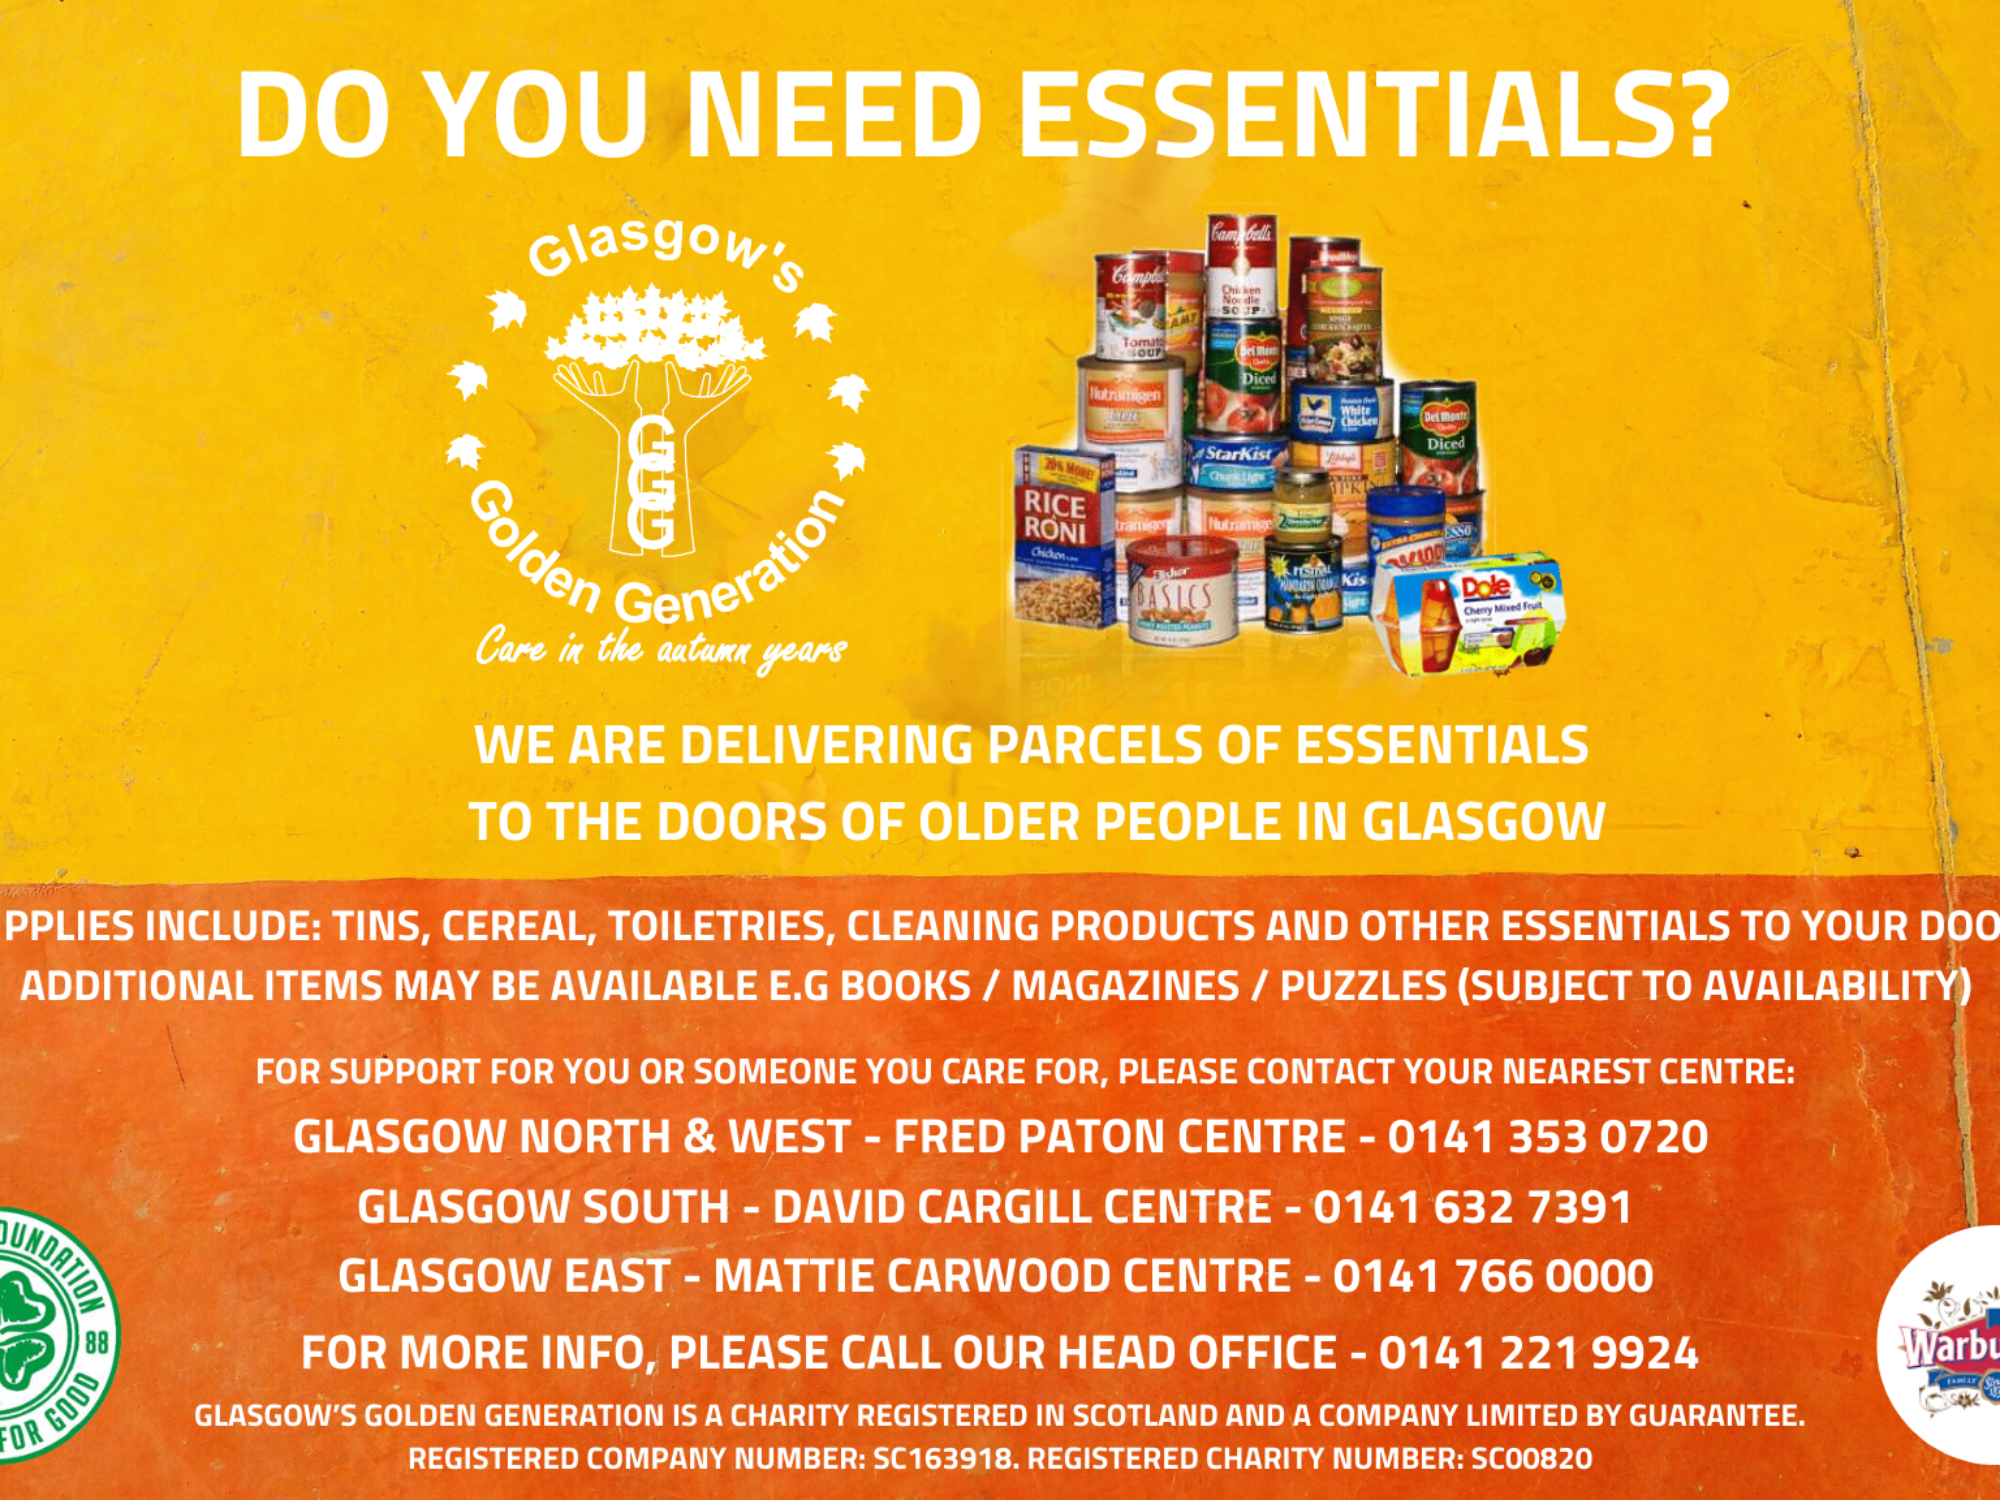 Do you need essentials?